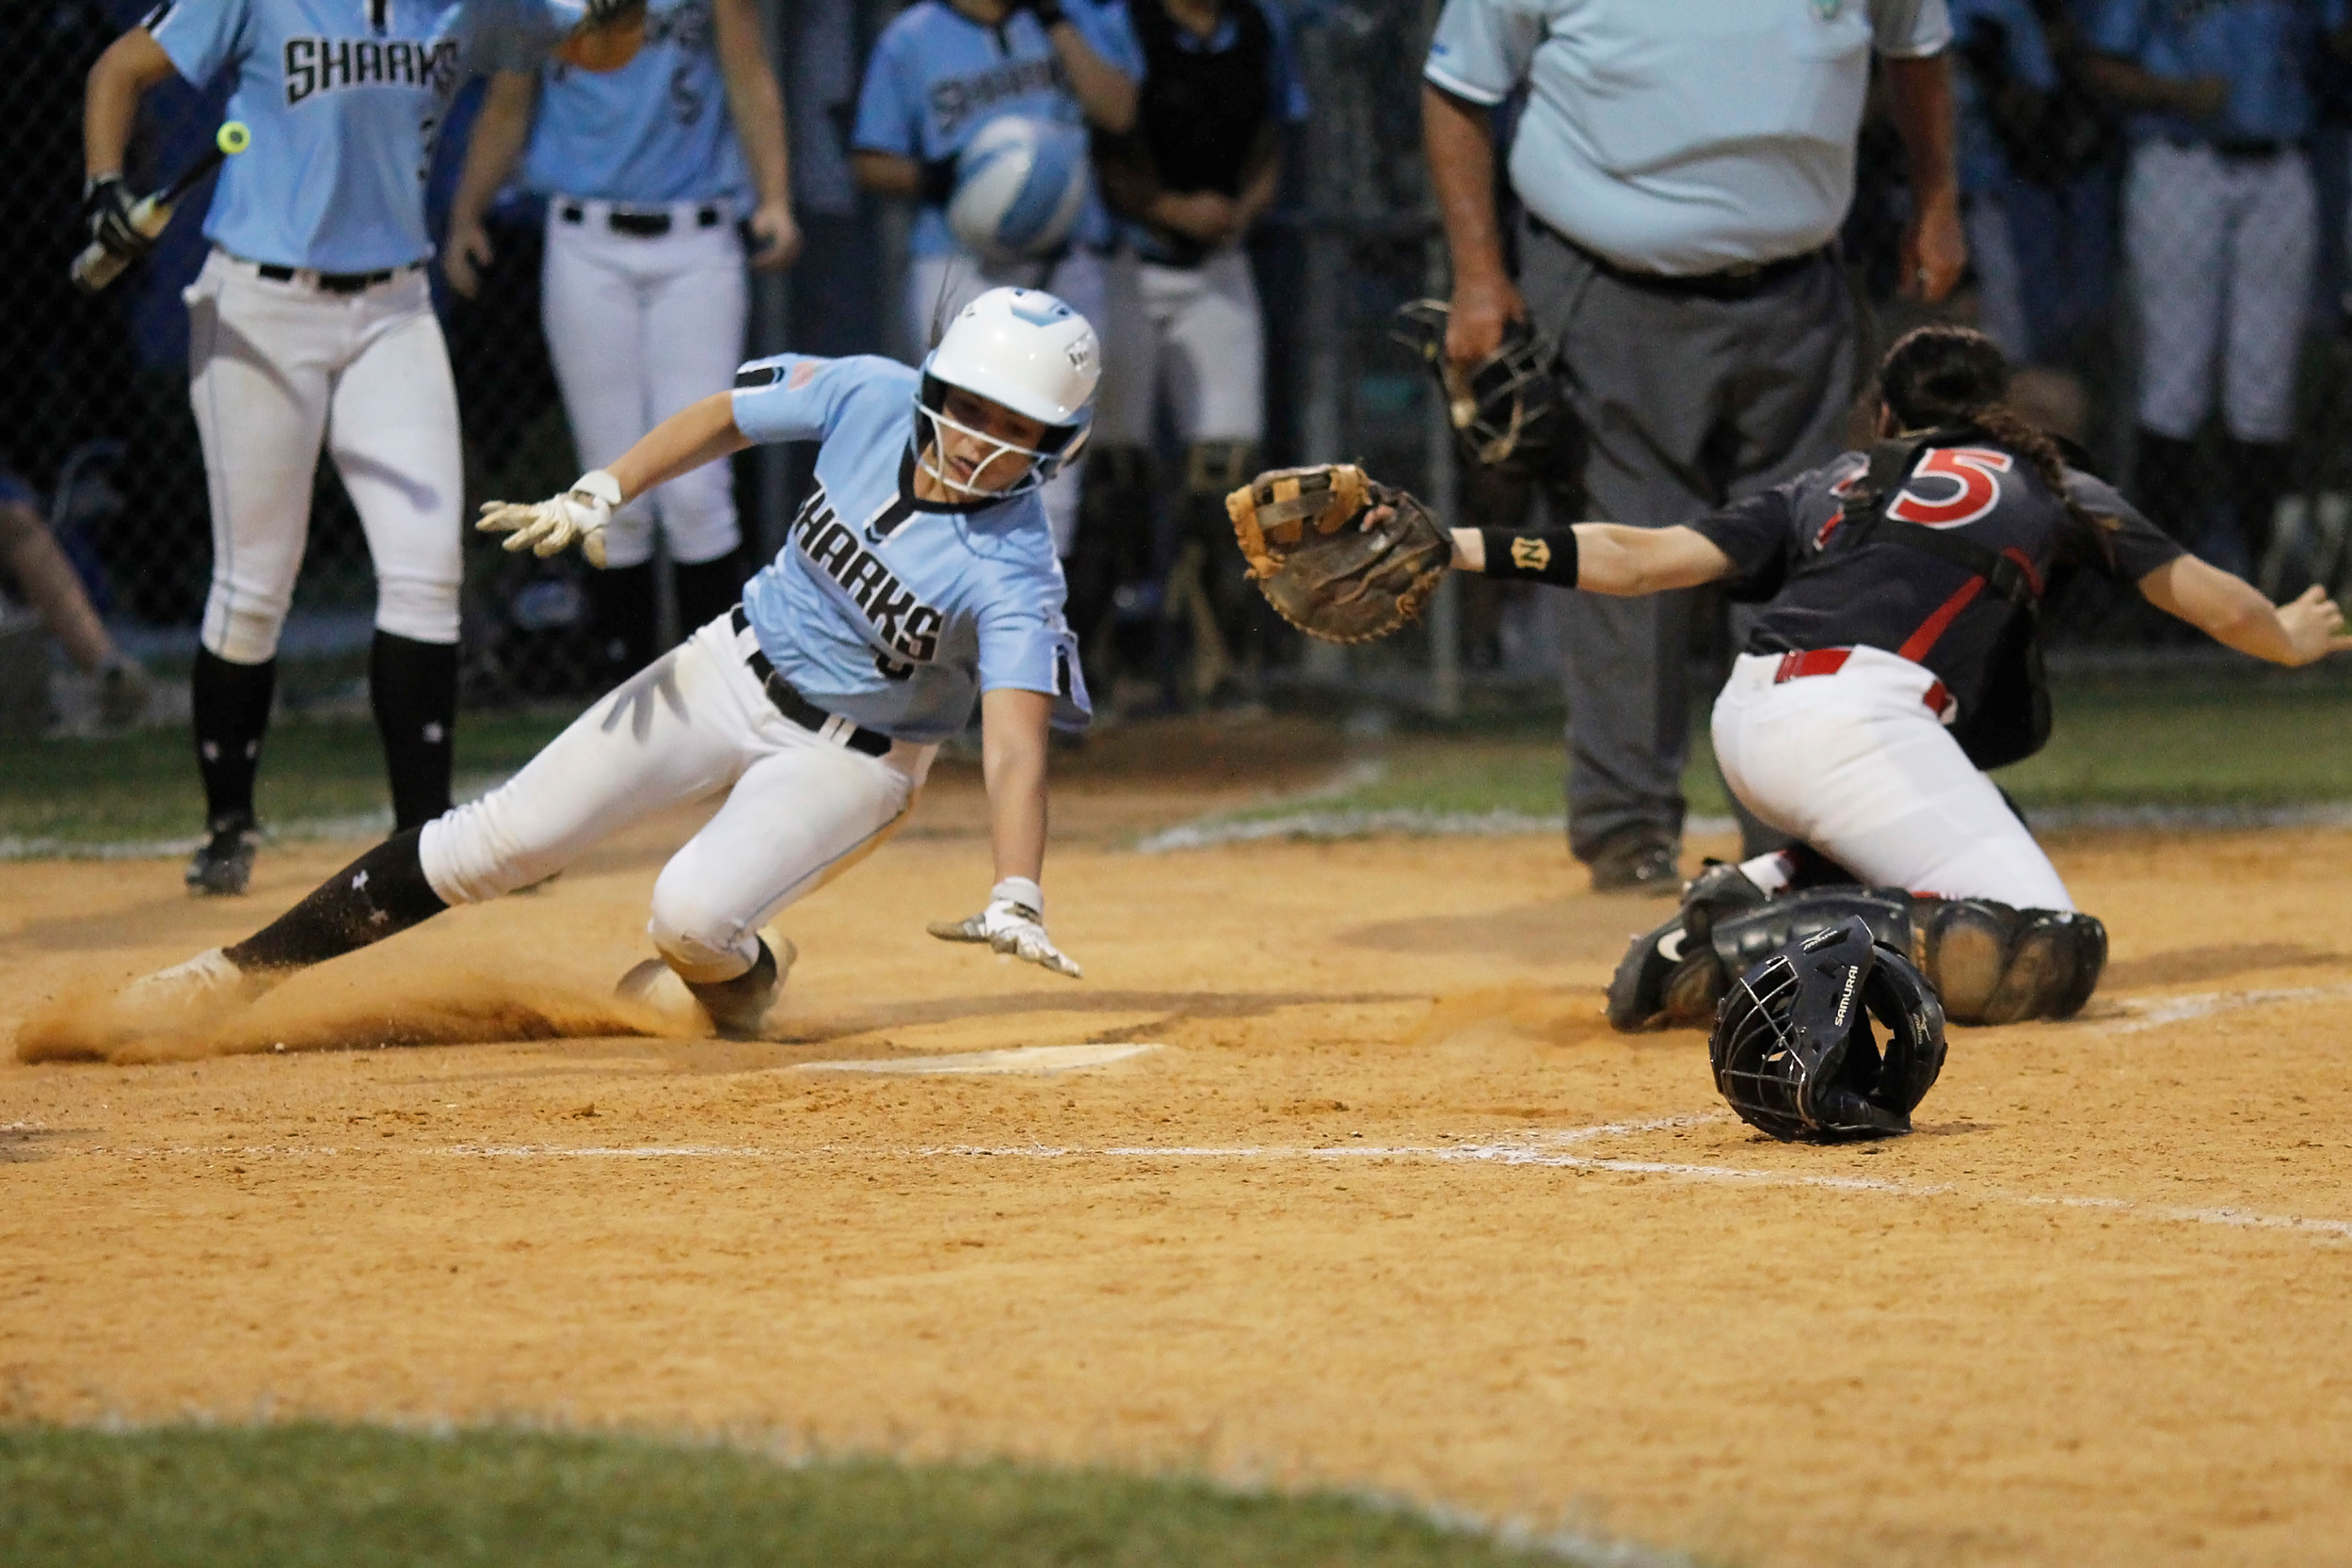 Michelle Leone slides home with the game winning run in the Sharks mercy win over West Florida.